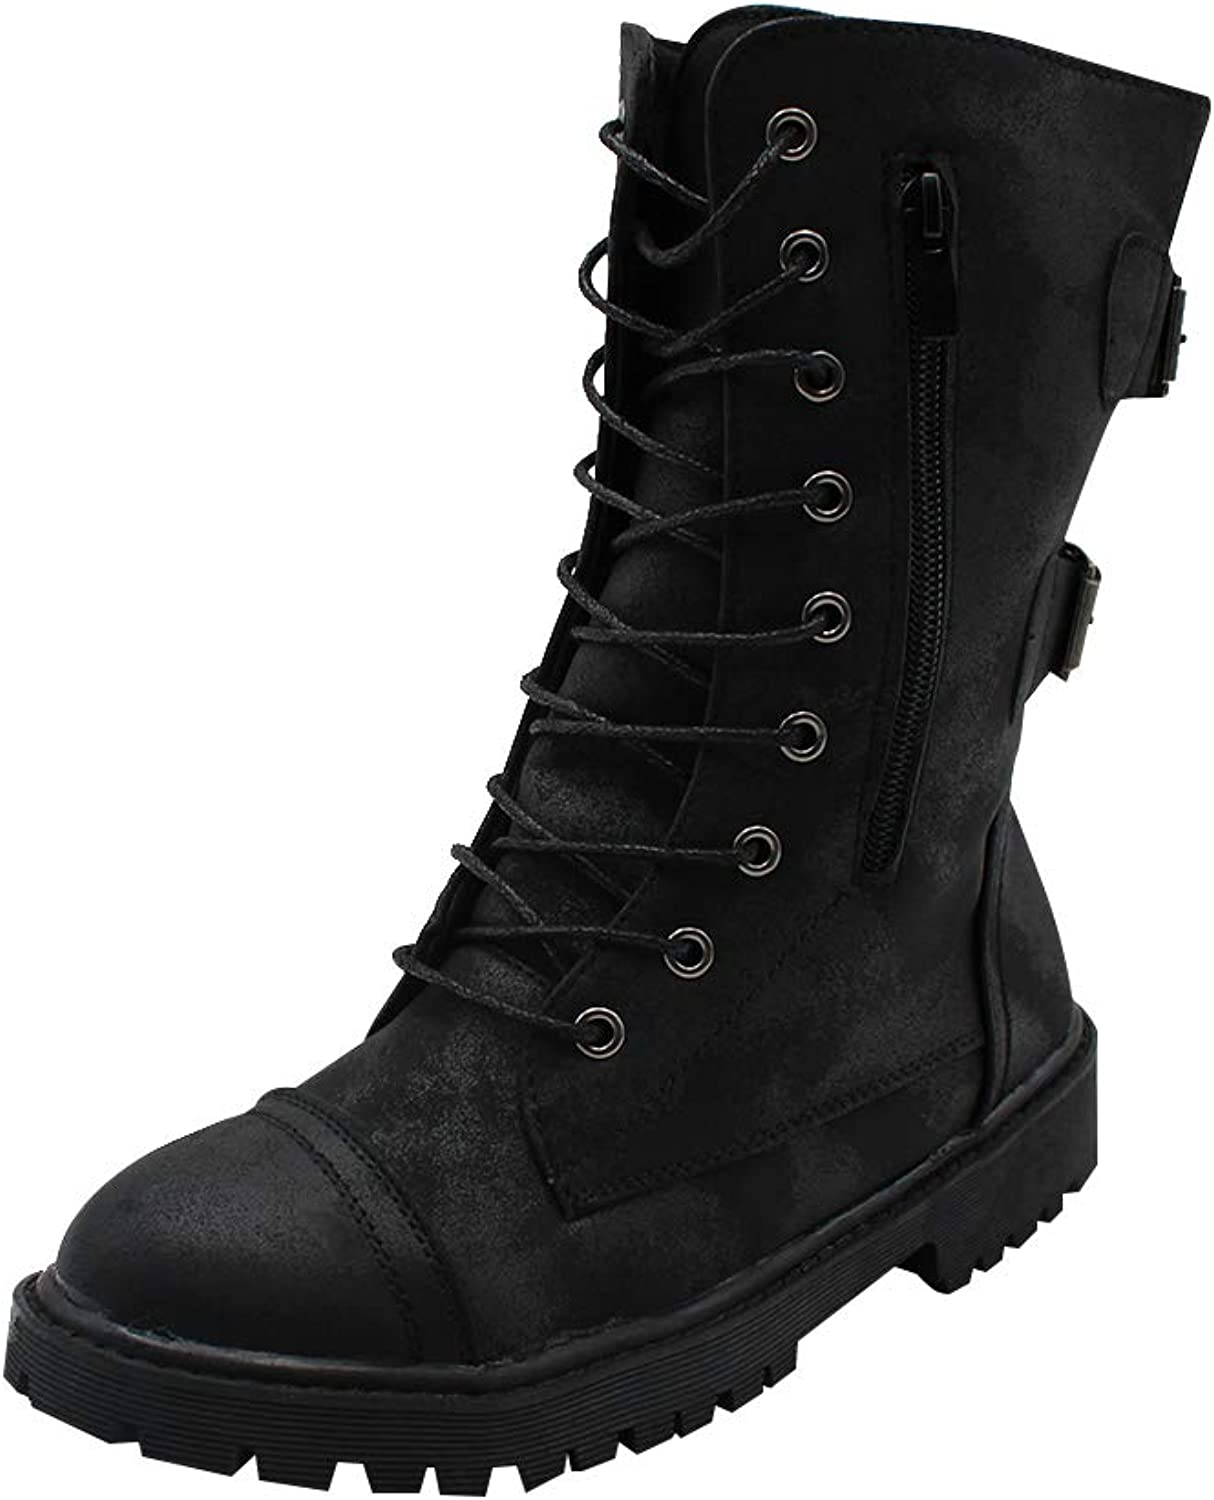 Uirend shoes Women Boots Mid Calf - Ladies Military Martin Motor Riding Combat Belt Buckle Leather Lace-up Zipper Flat Biker Boot